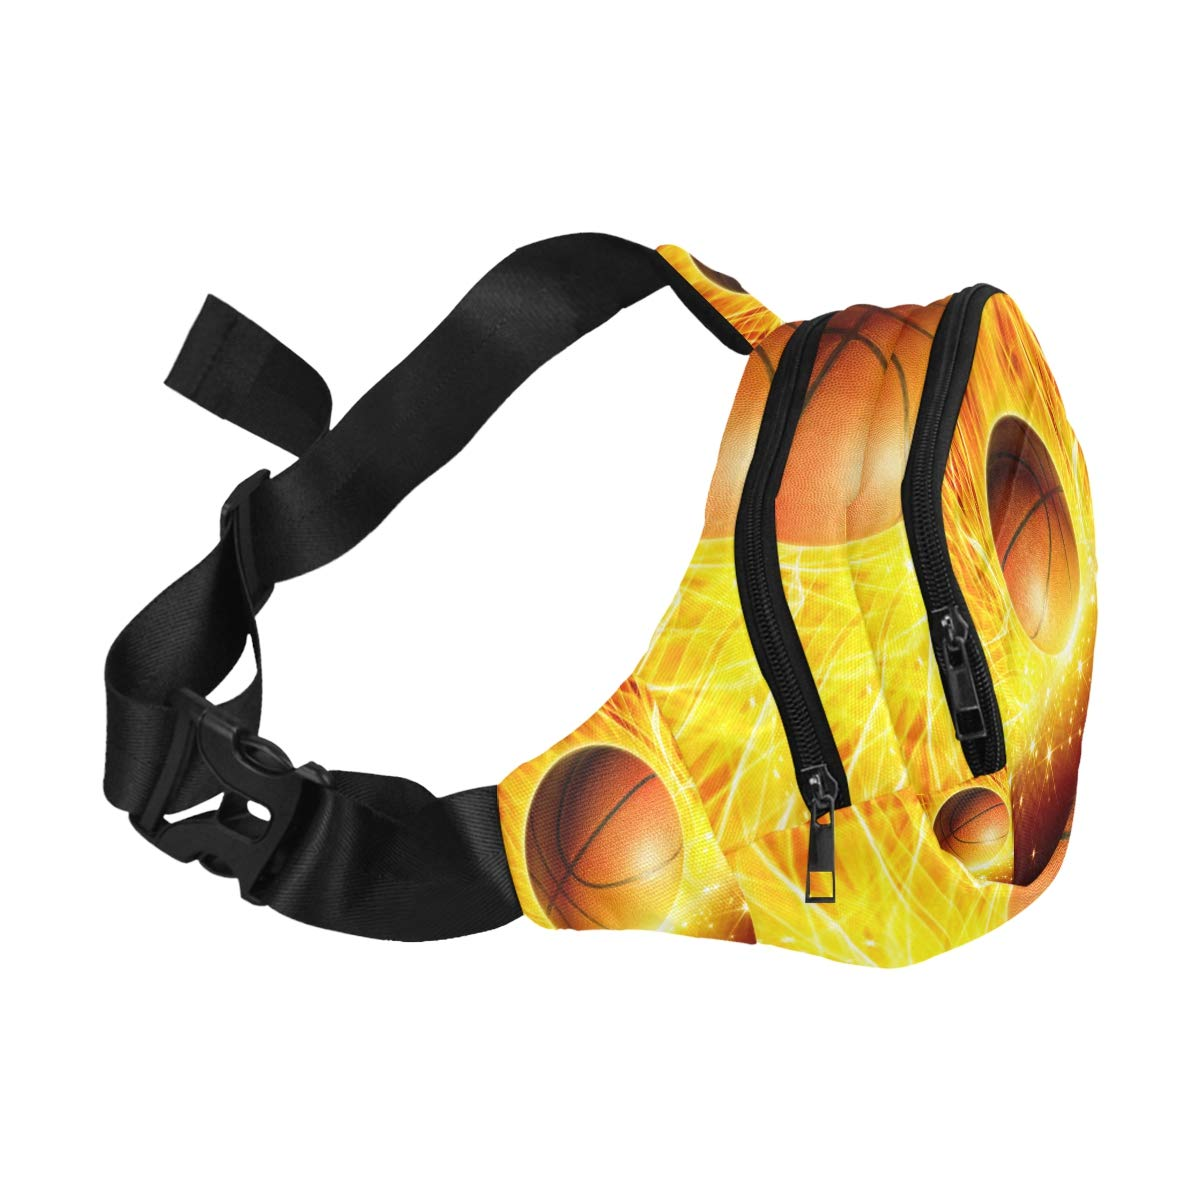 Basketball Ball In Fire And Water Fenny Packs Waist Bags Adjustable Belt Waterproof Nylon Travel Running Sport Vacation Party For Men Women Boys Girls Kids